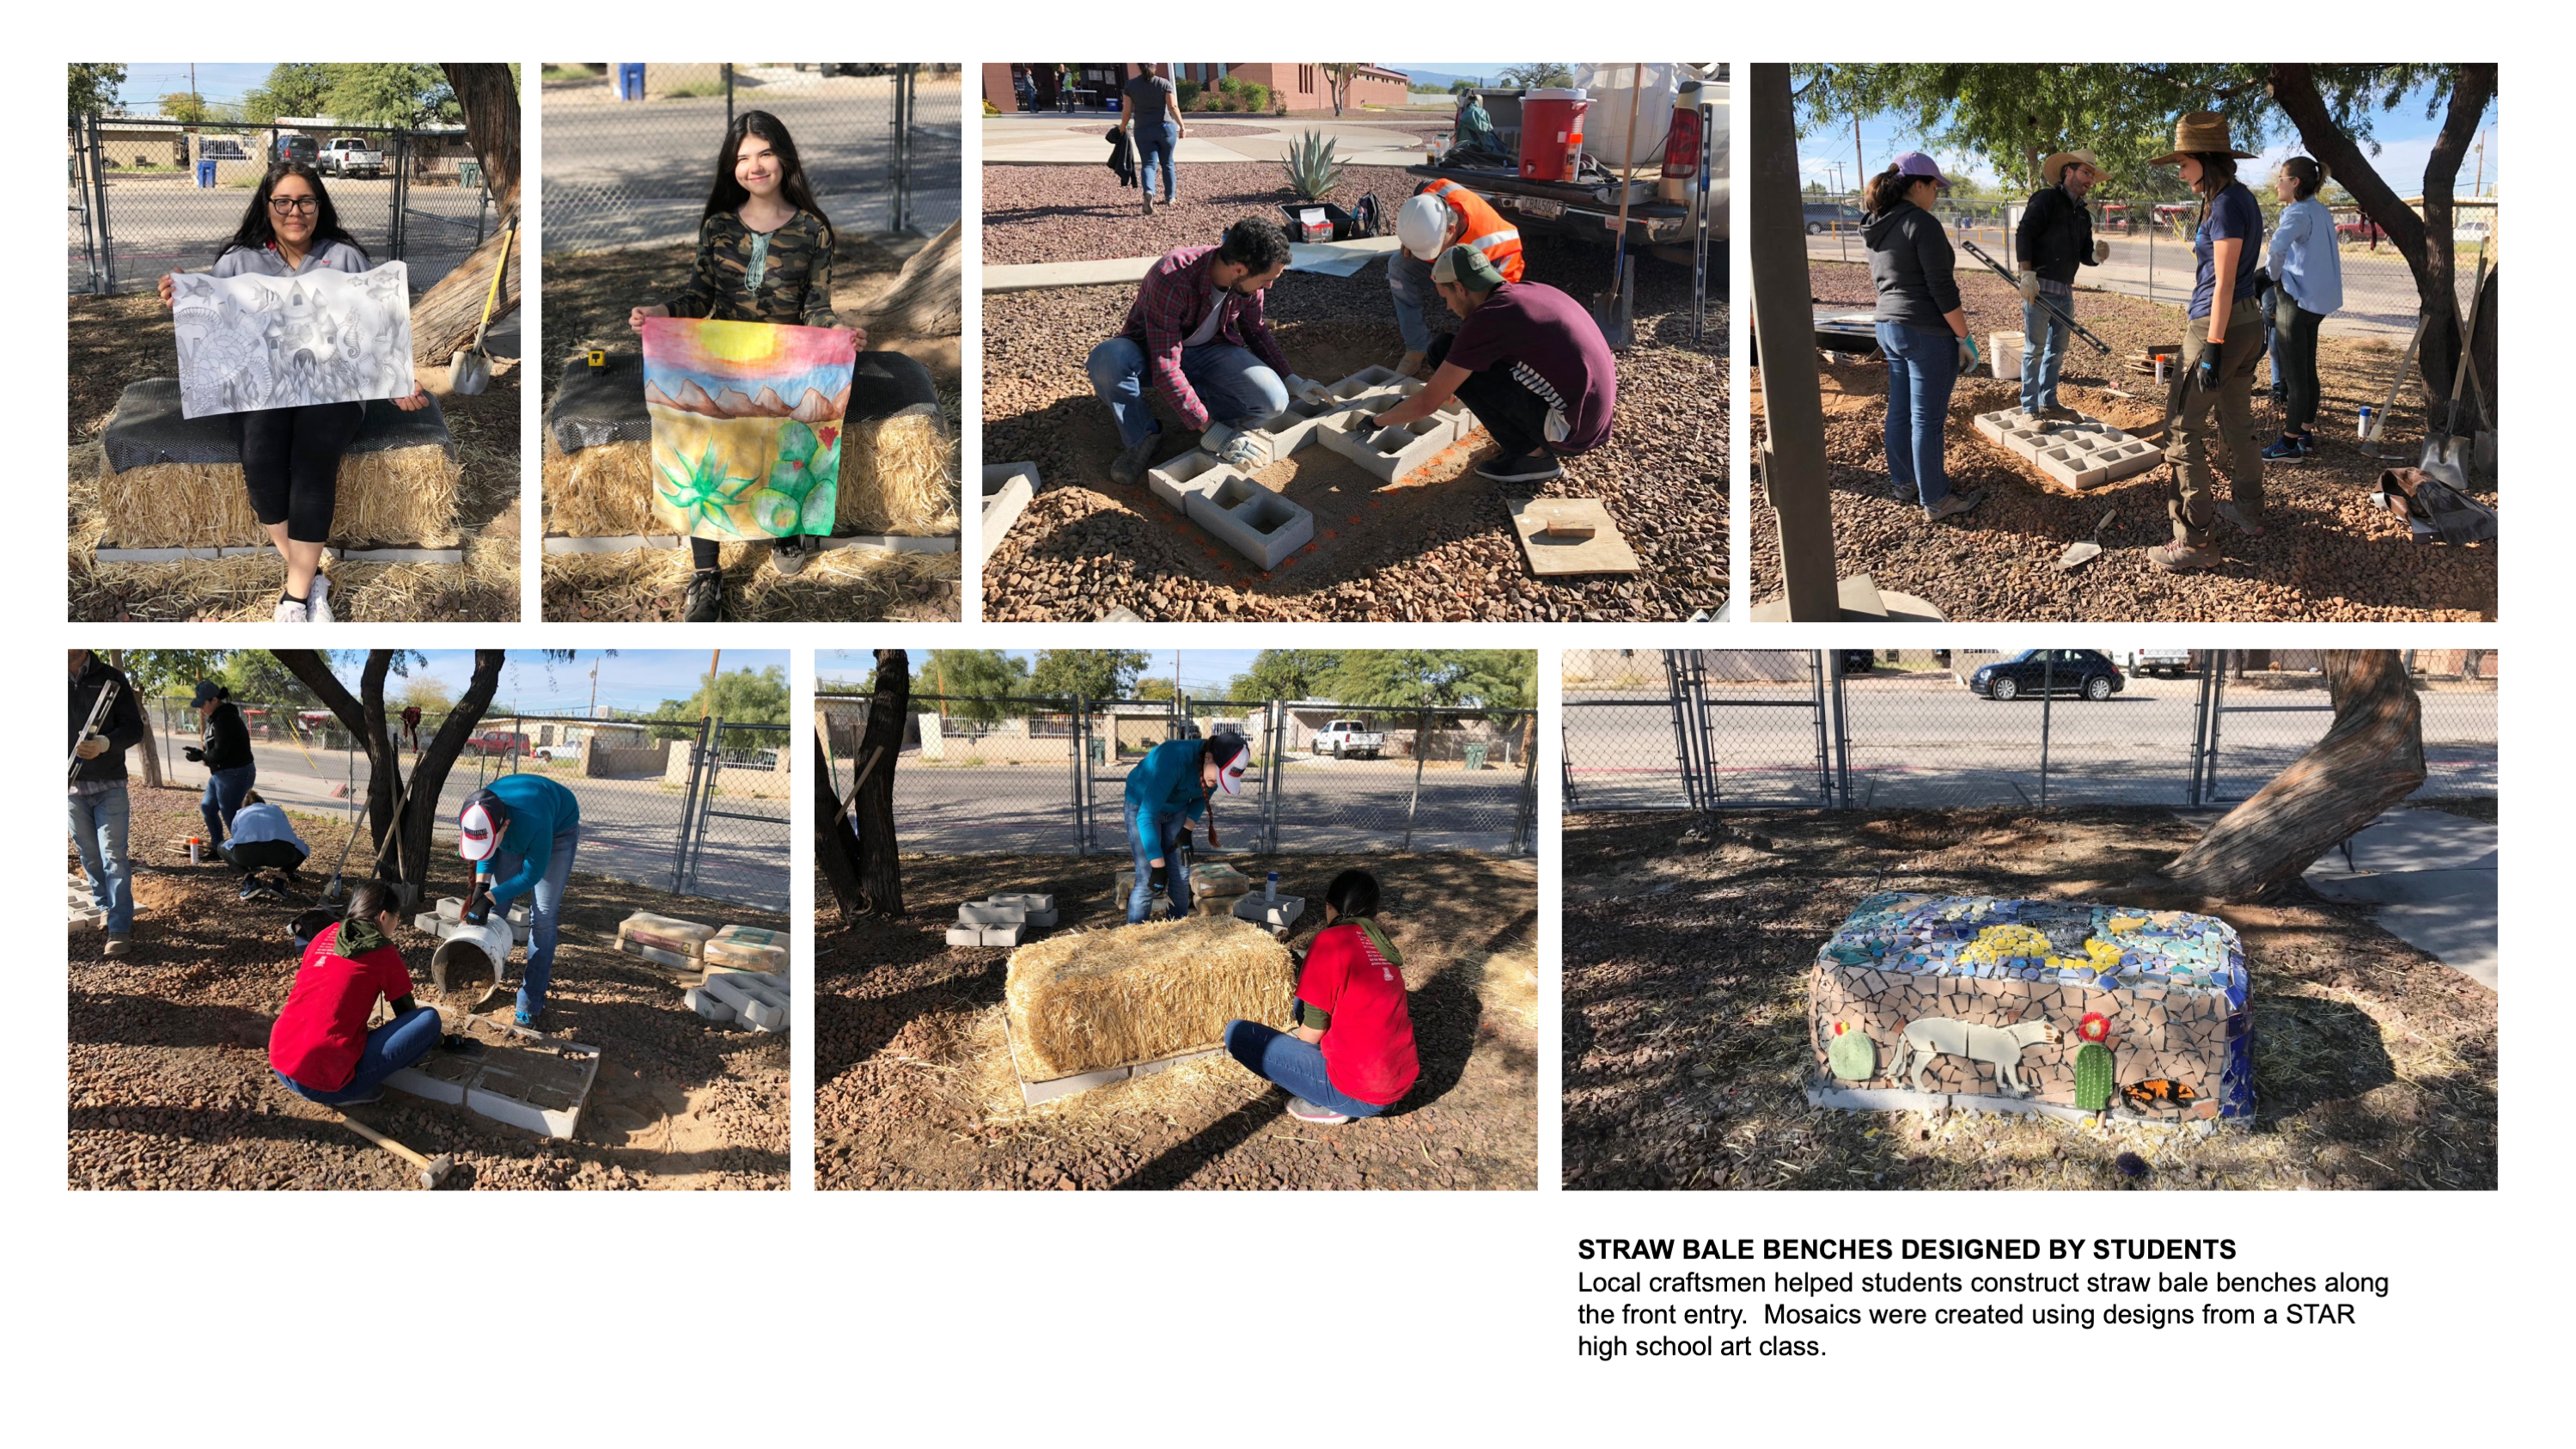 7_Straw-Bale-Benches_GI-for-Social-Justice